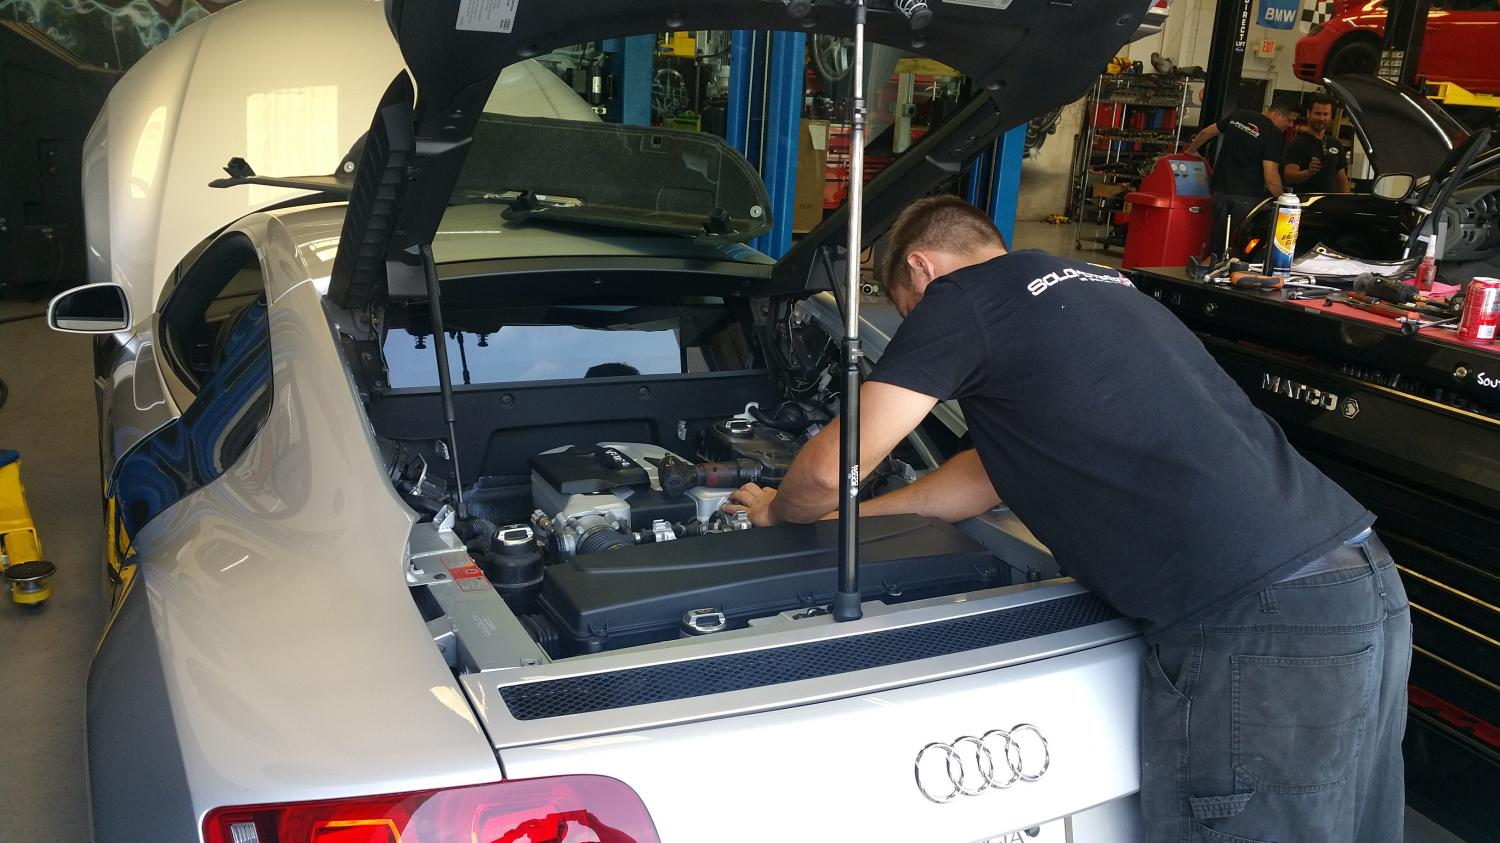 Audi R8 Tuning and Service